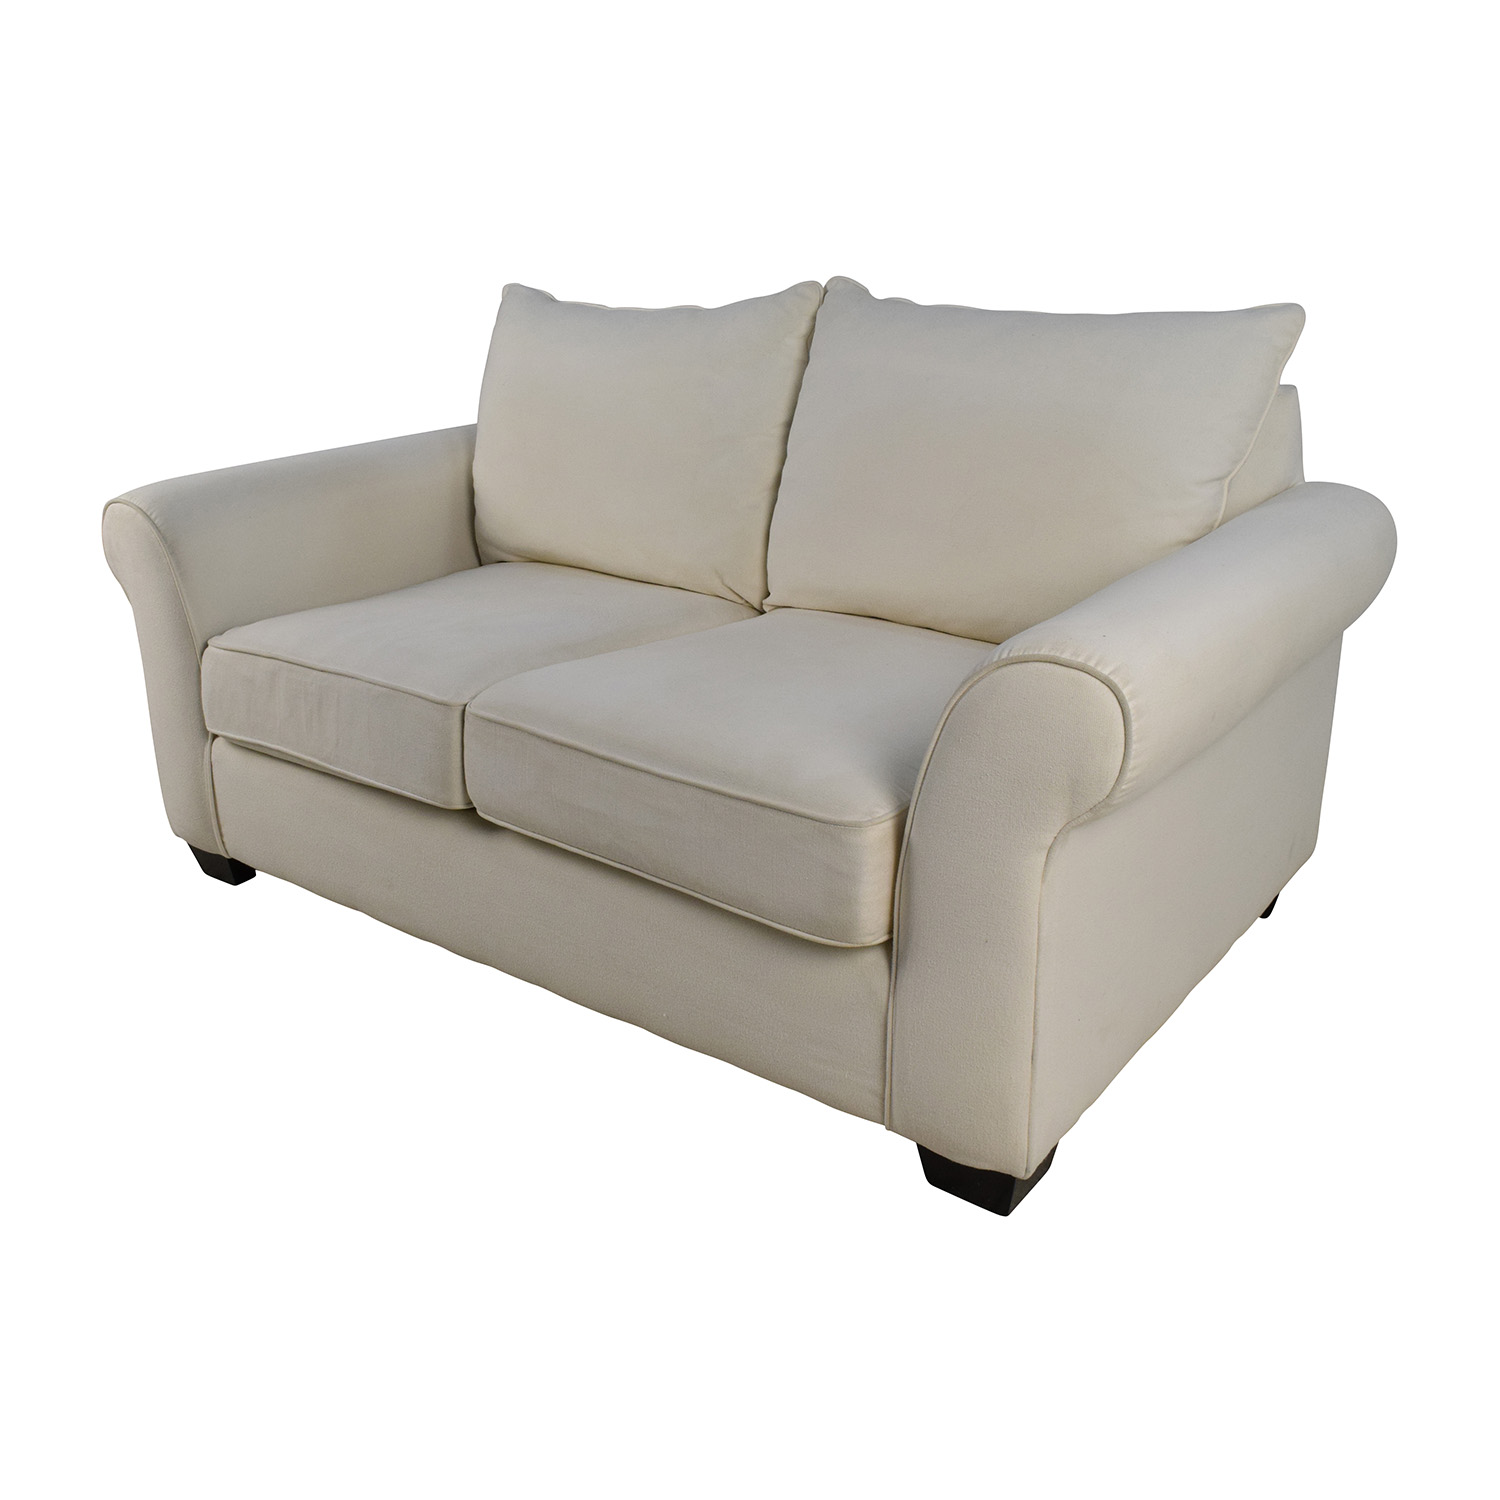 Awesome 72 Off Pottery Barn Pottery Barn Comfort Roll Arm Natural Loveseat Sofas Ocoug Best Dining Table And Chair Ideas Images Ocougorg